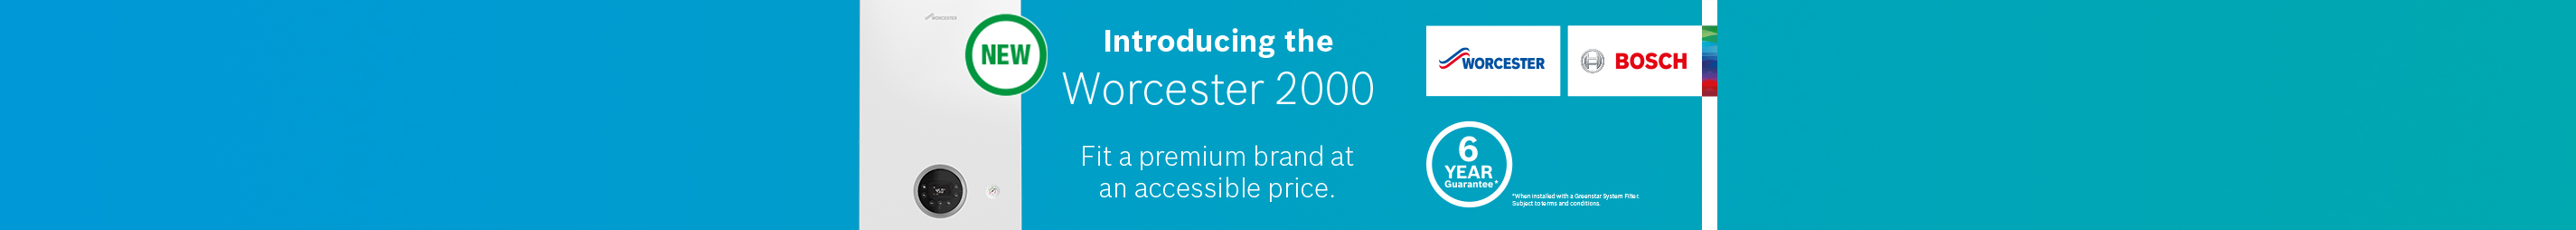 New Worcester Bosch 2000 Now Available!